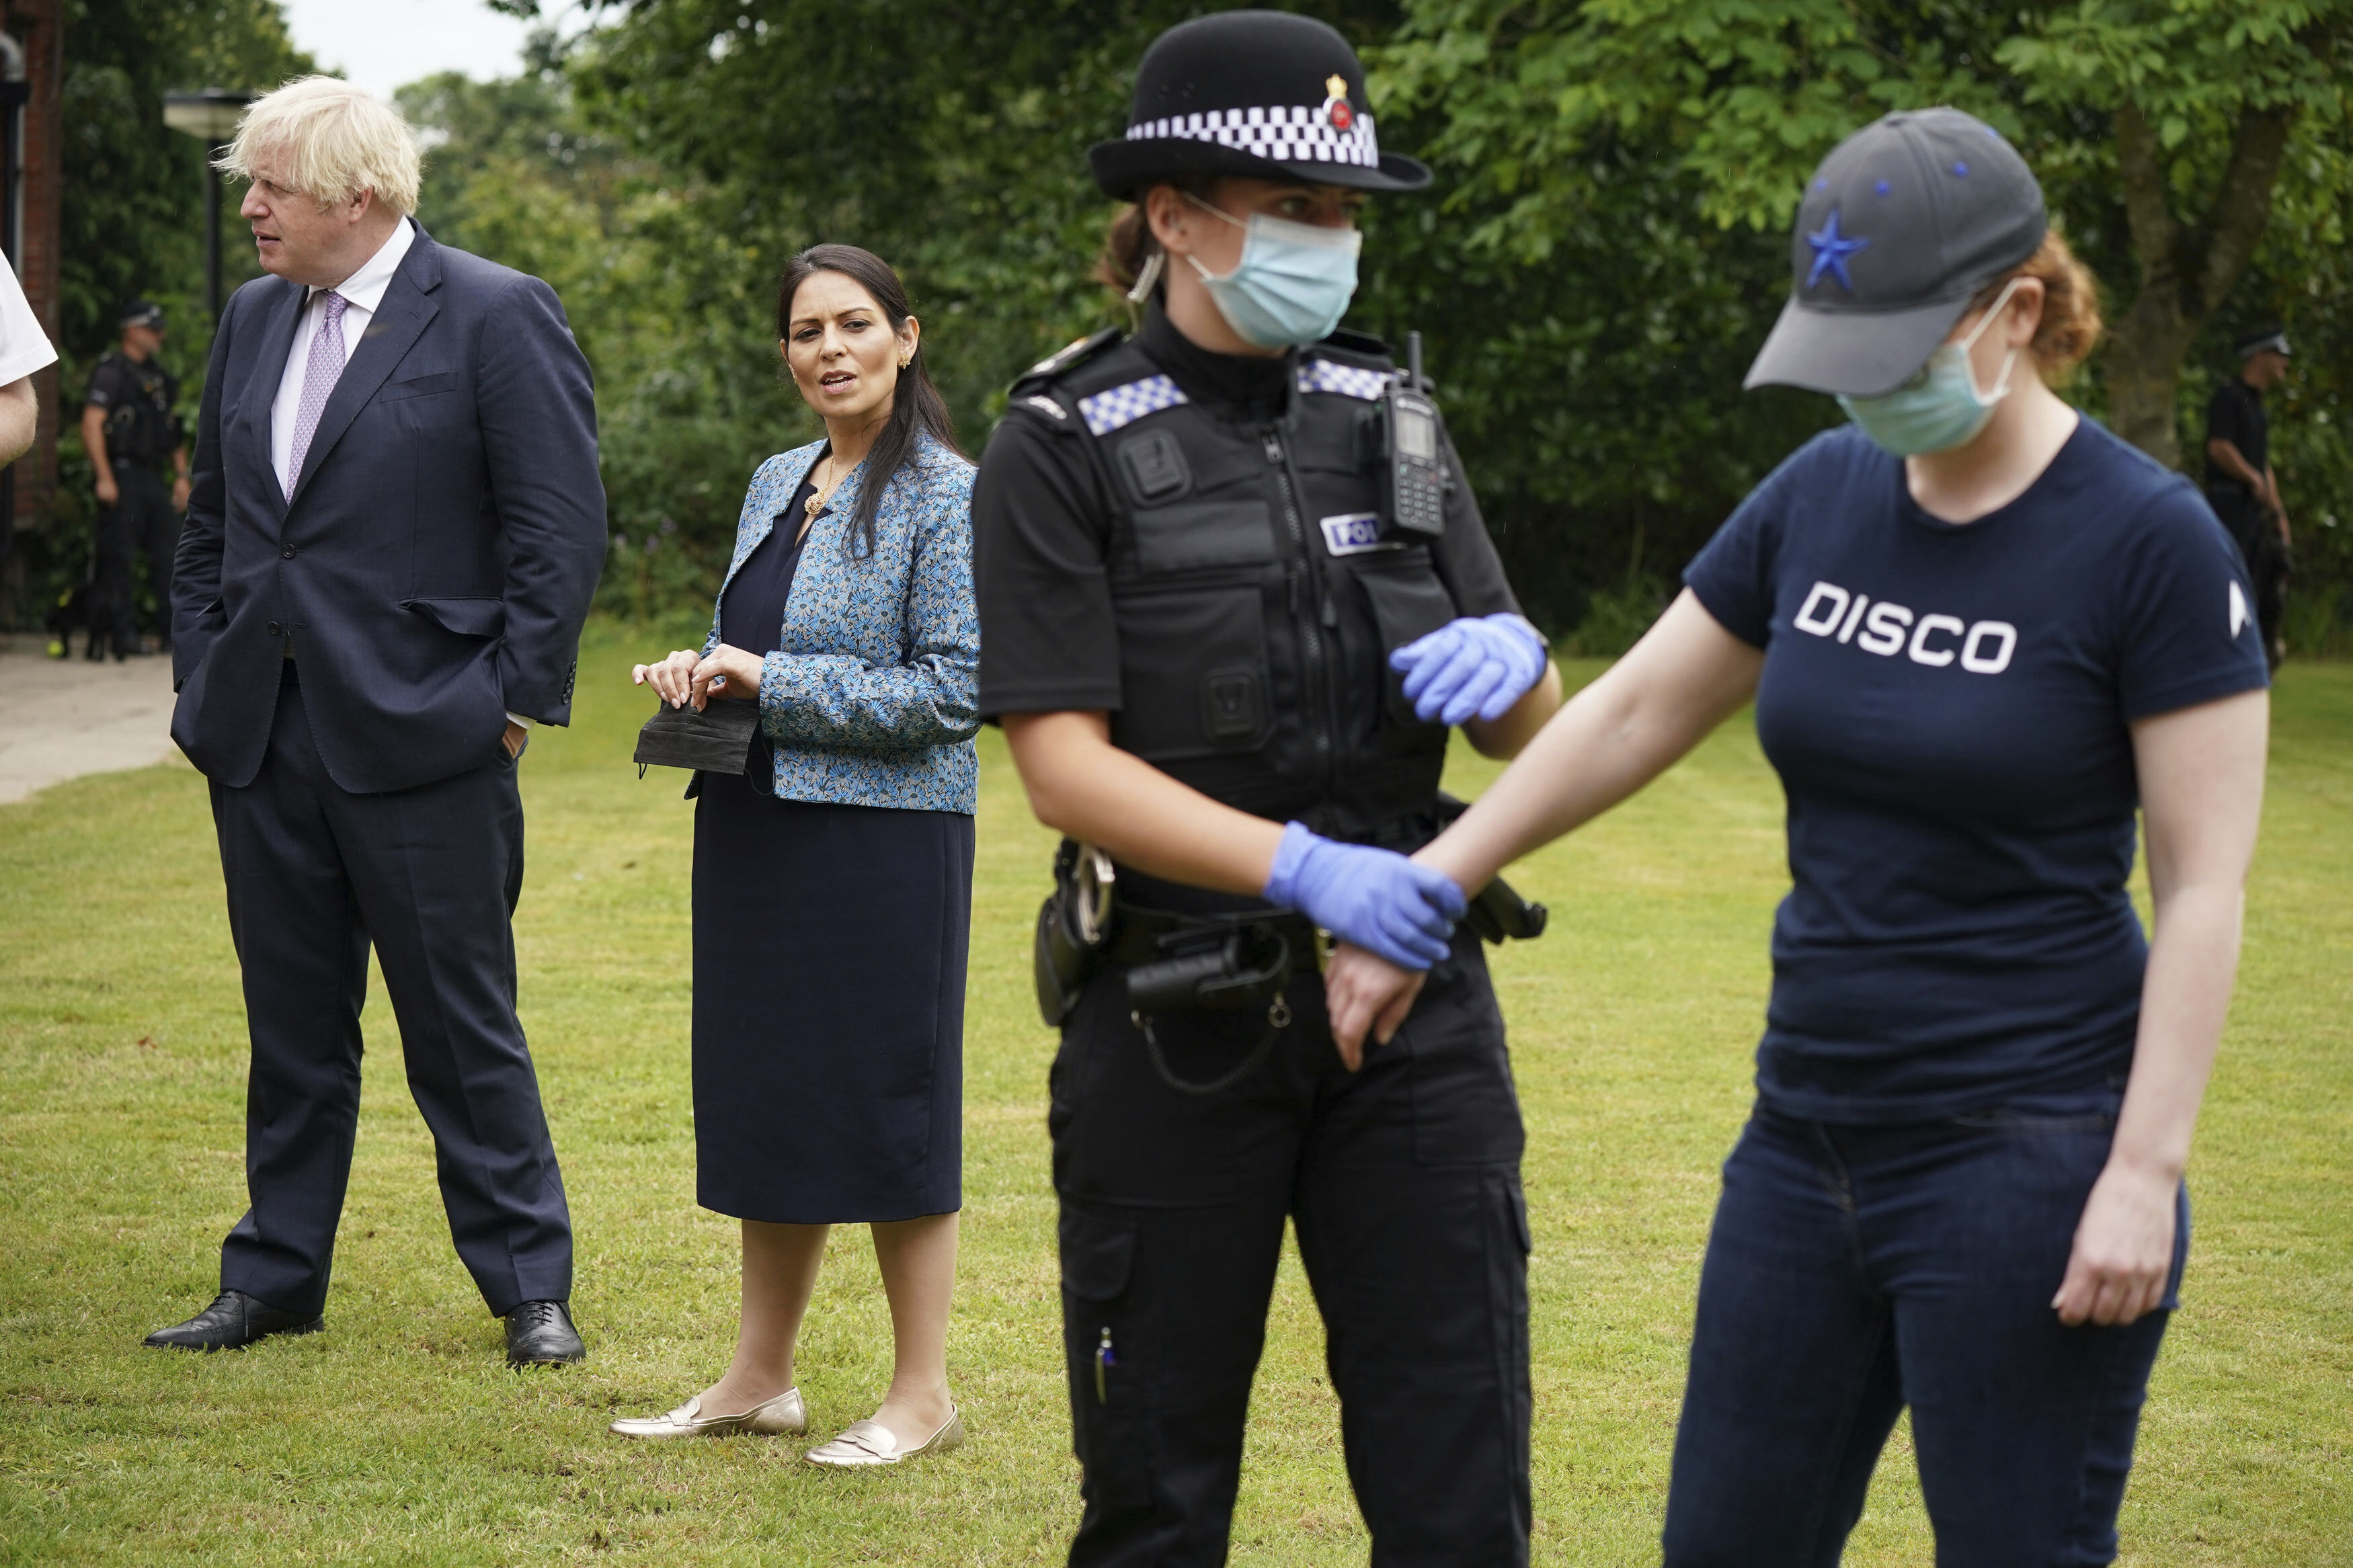 <p>Home Secretary Priti Patel, second left stands with Britain's Prime Minister Boris Johnson, as she watches a search exercise, during a visit to Surrey Police headquarters in Guildford, England, Tuesday July 27, 2021. (Yui Mok/Pool Photo via AP)</p>